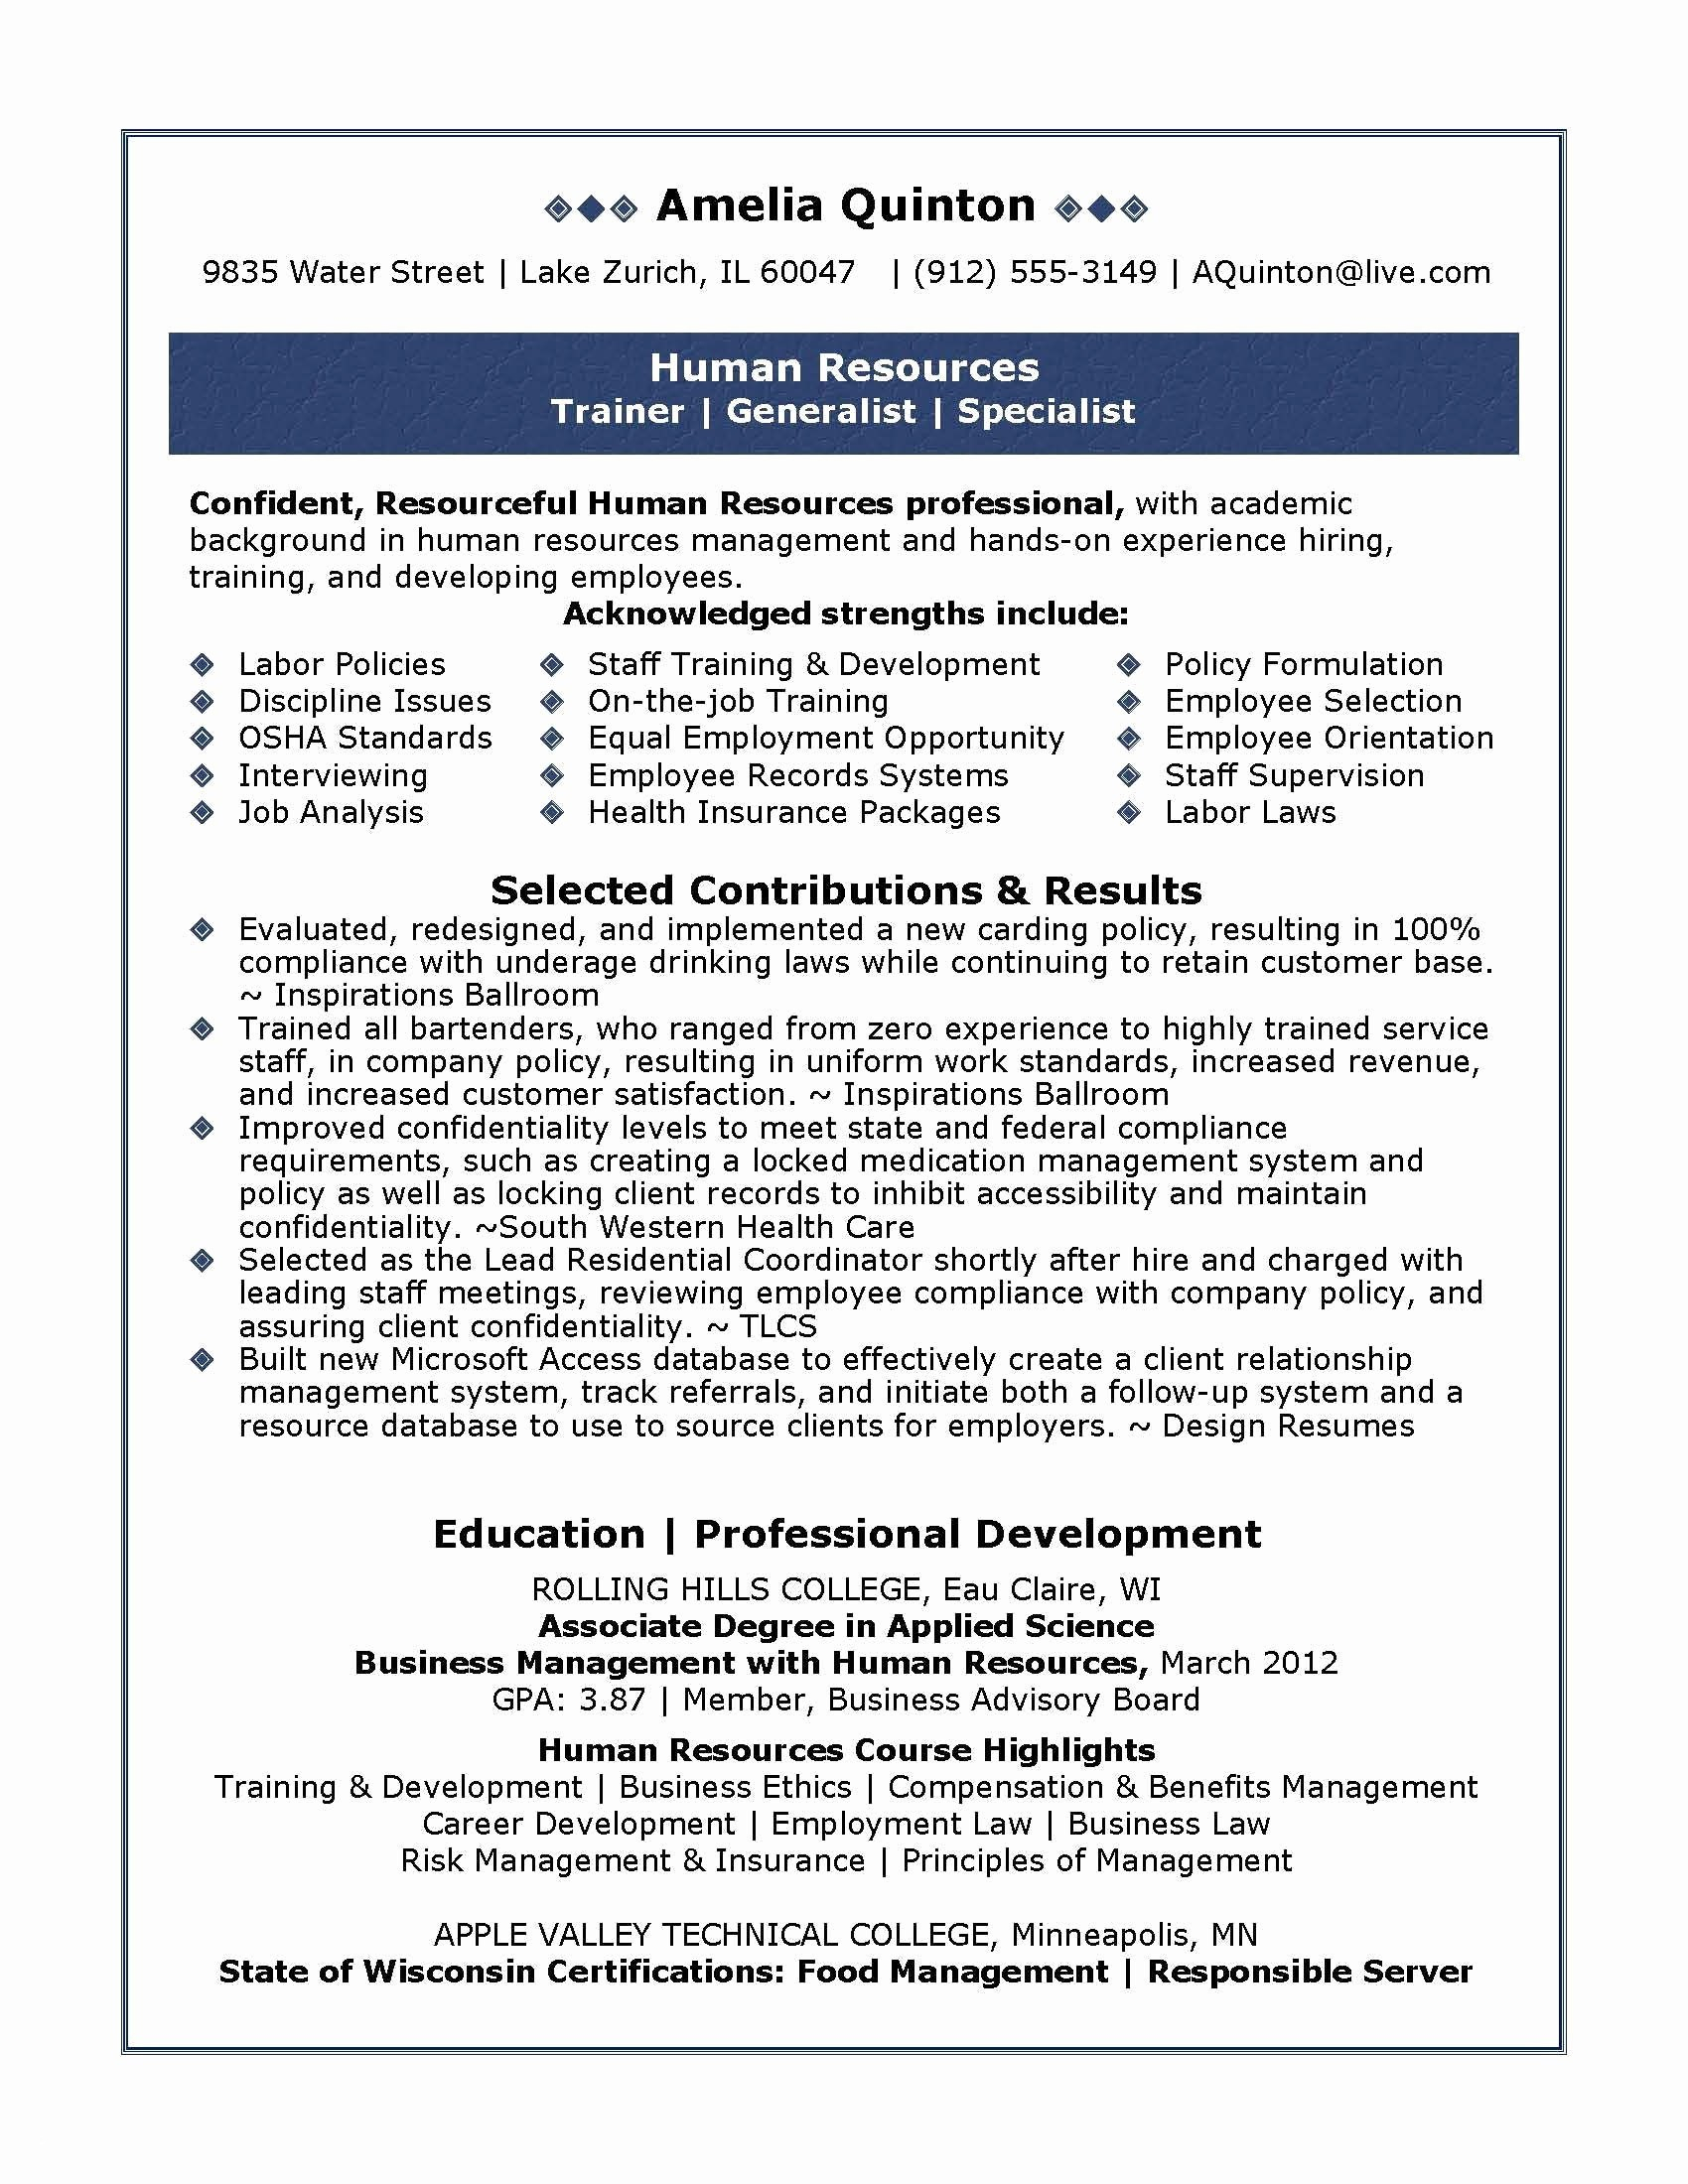 Human Resources Manager Resume - Human Resource Generalist Resume Lovely Examples Hr Resumes